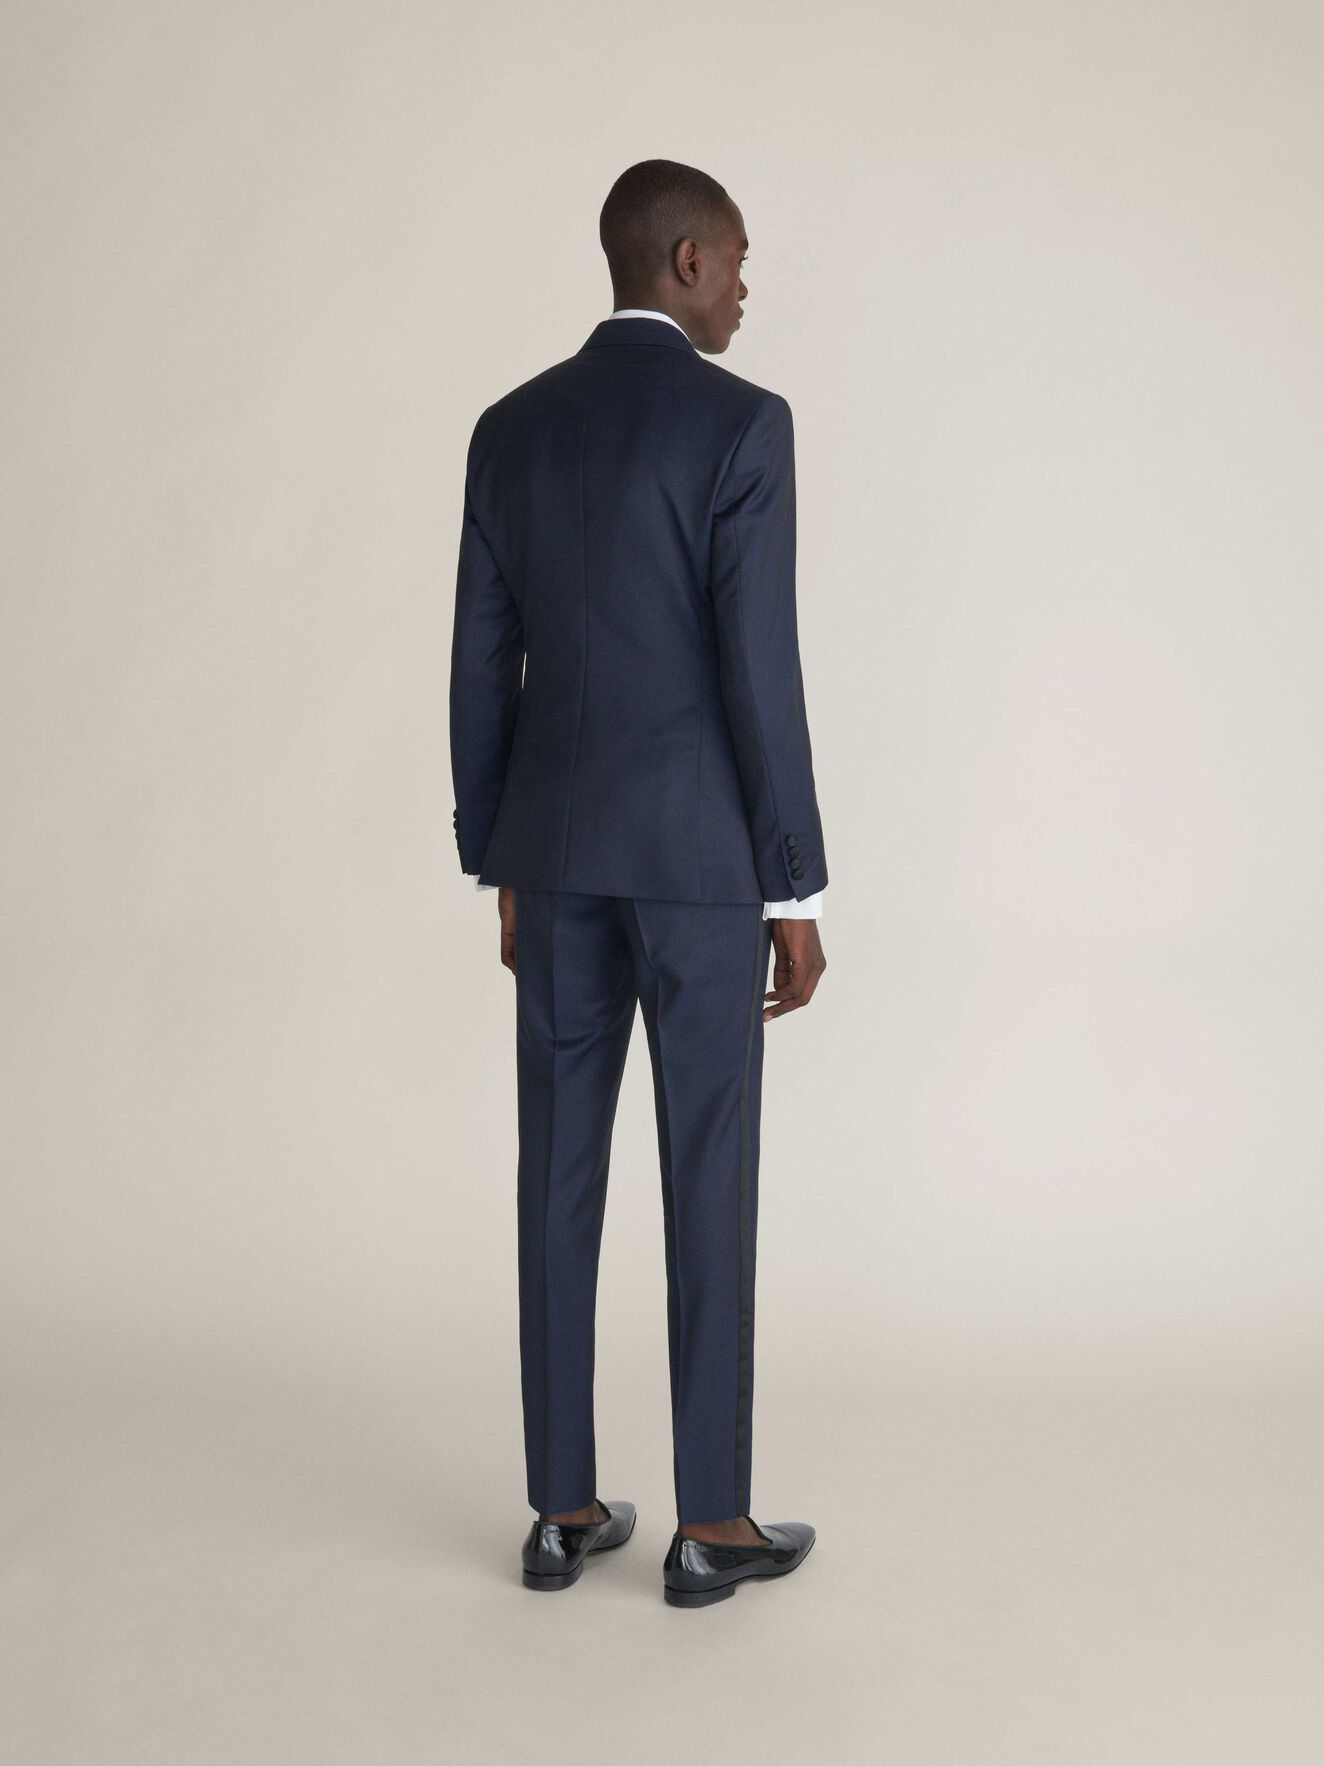 Thulin Trousers in Light Ink from Tiger of Sweden